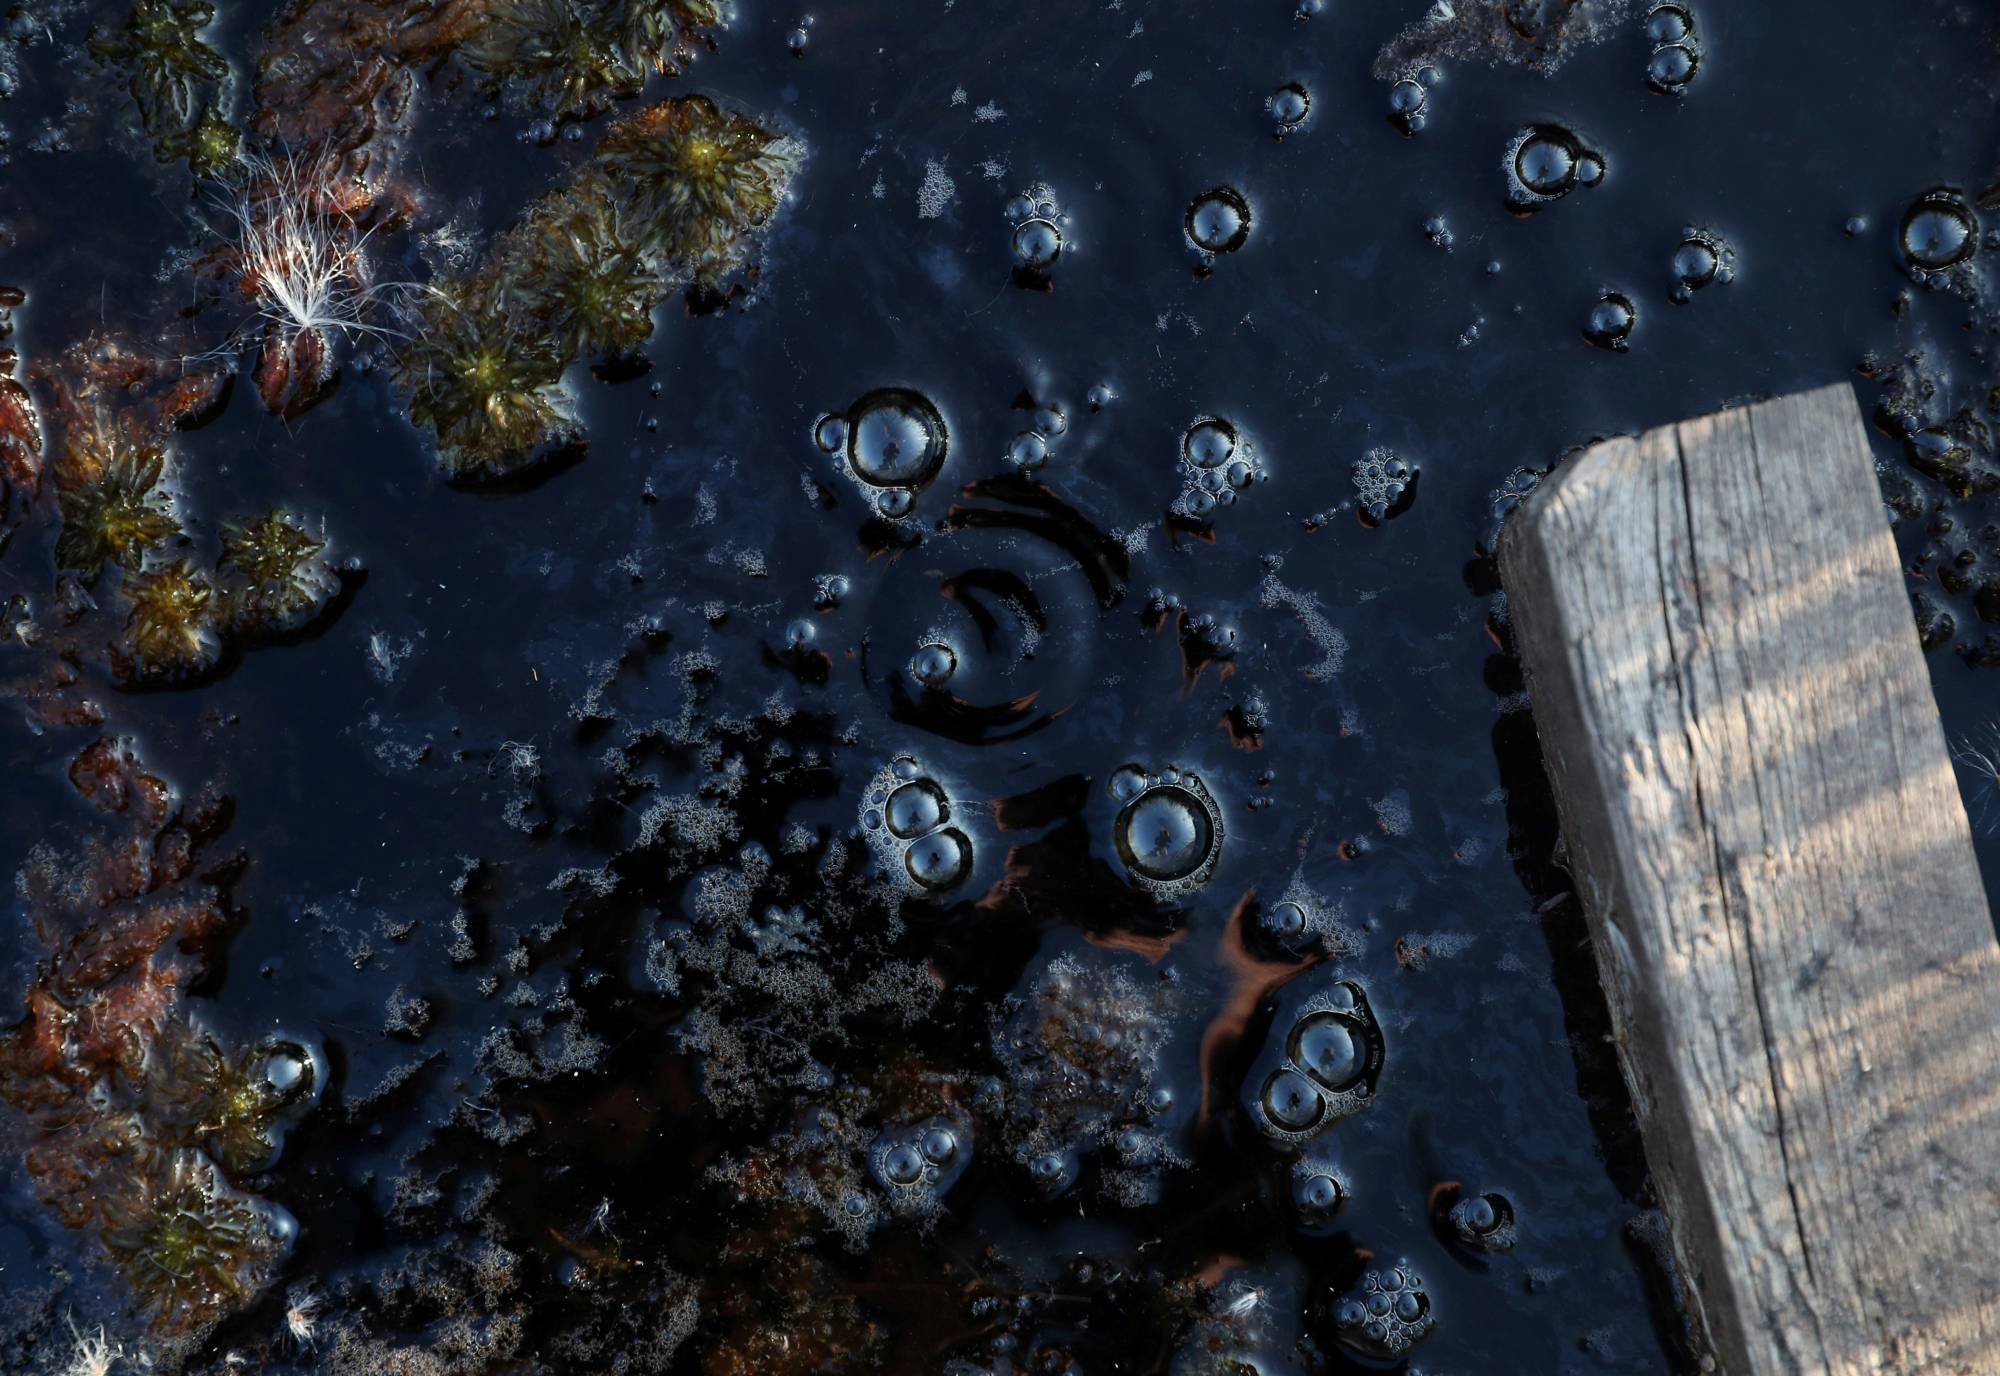 Methane bubbles are seen in an area of marshland at a research post at Stordalen Mire near Abisko, Sweden, in August last year. | REUTERS